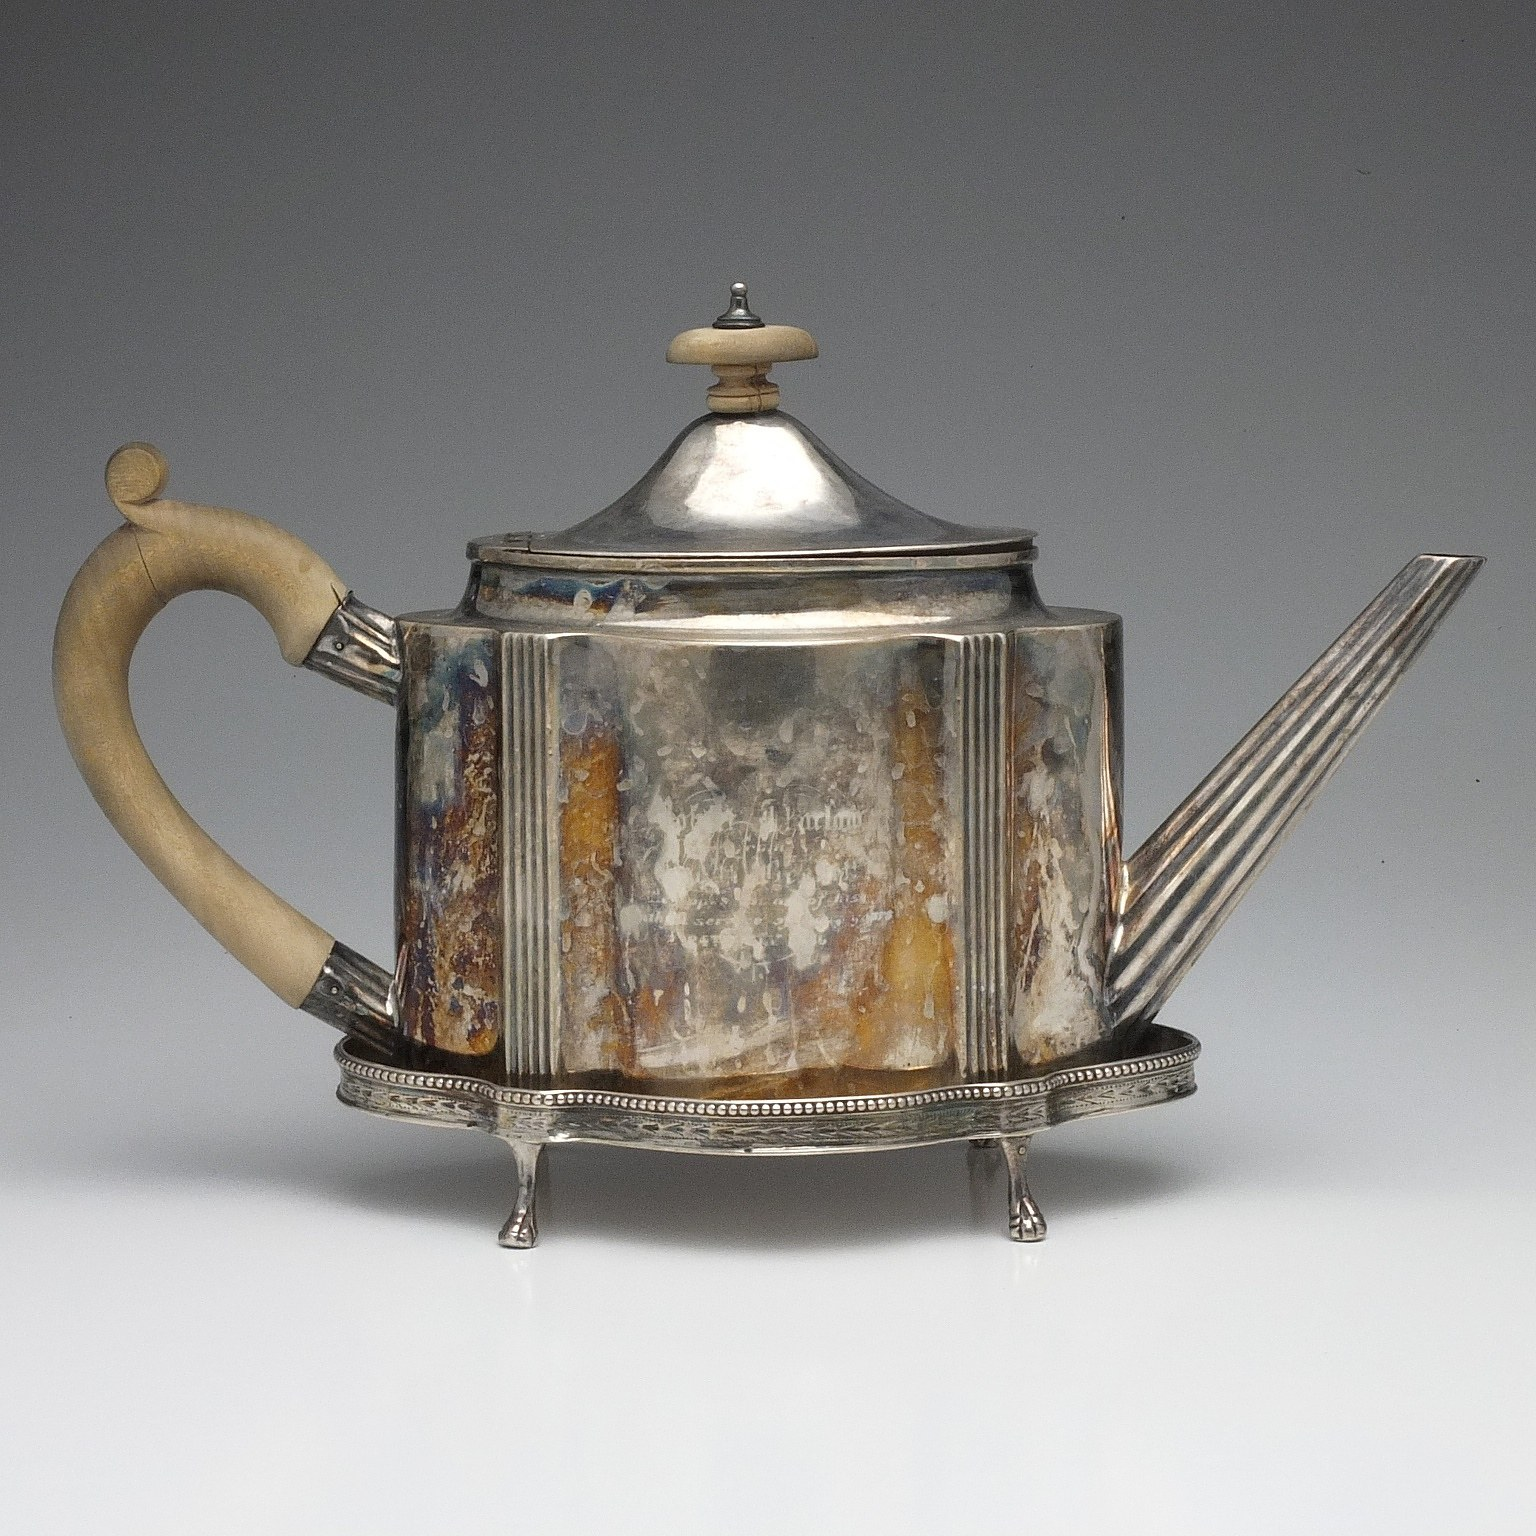 'George III Sterling Silver Teapot and Trivet John Langlands I & John Robertson I Newcastle 1810'